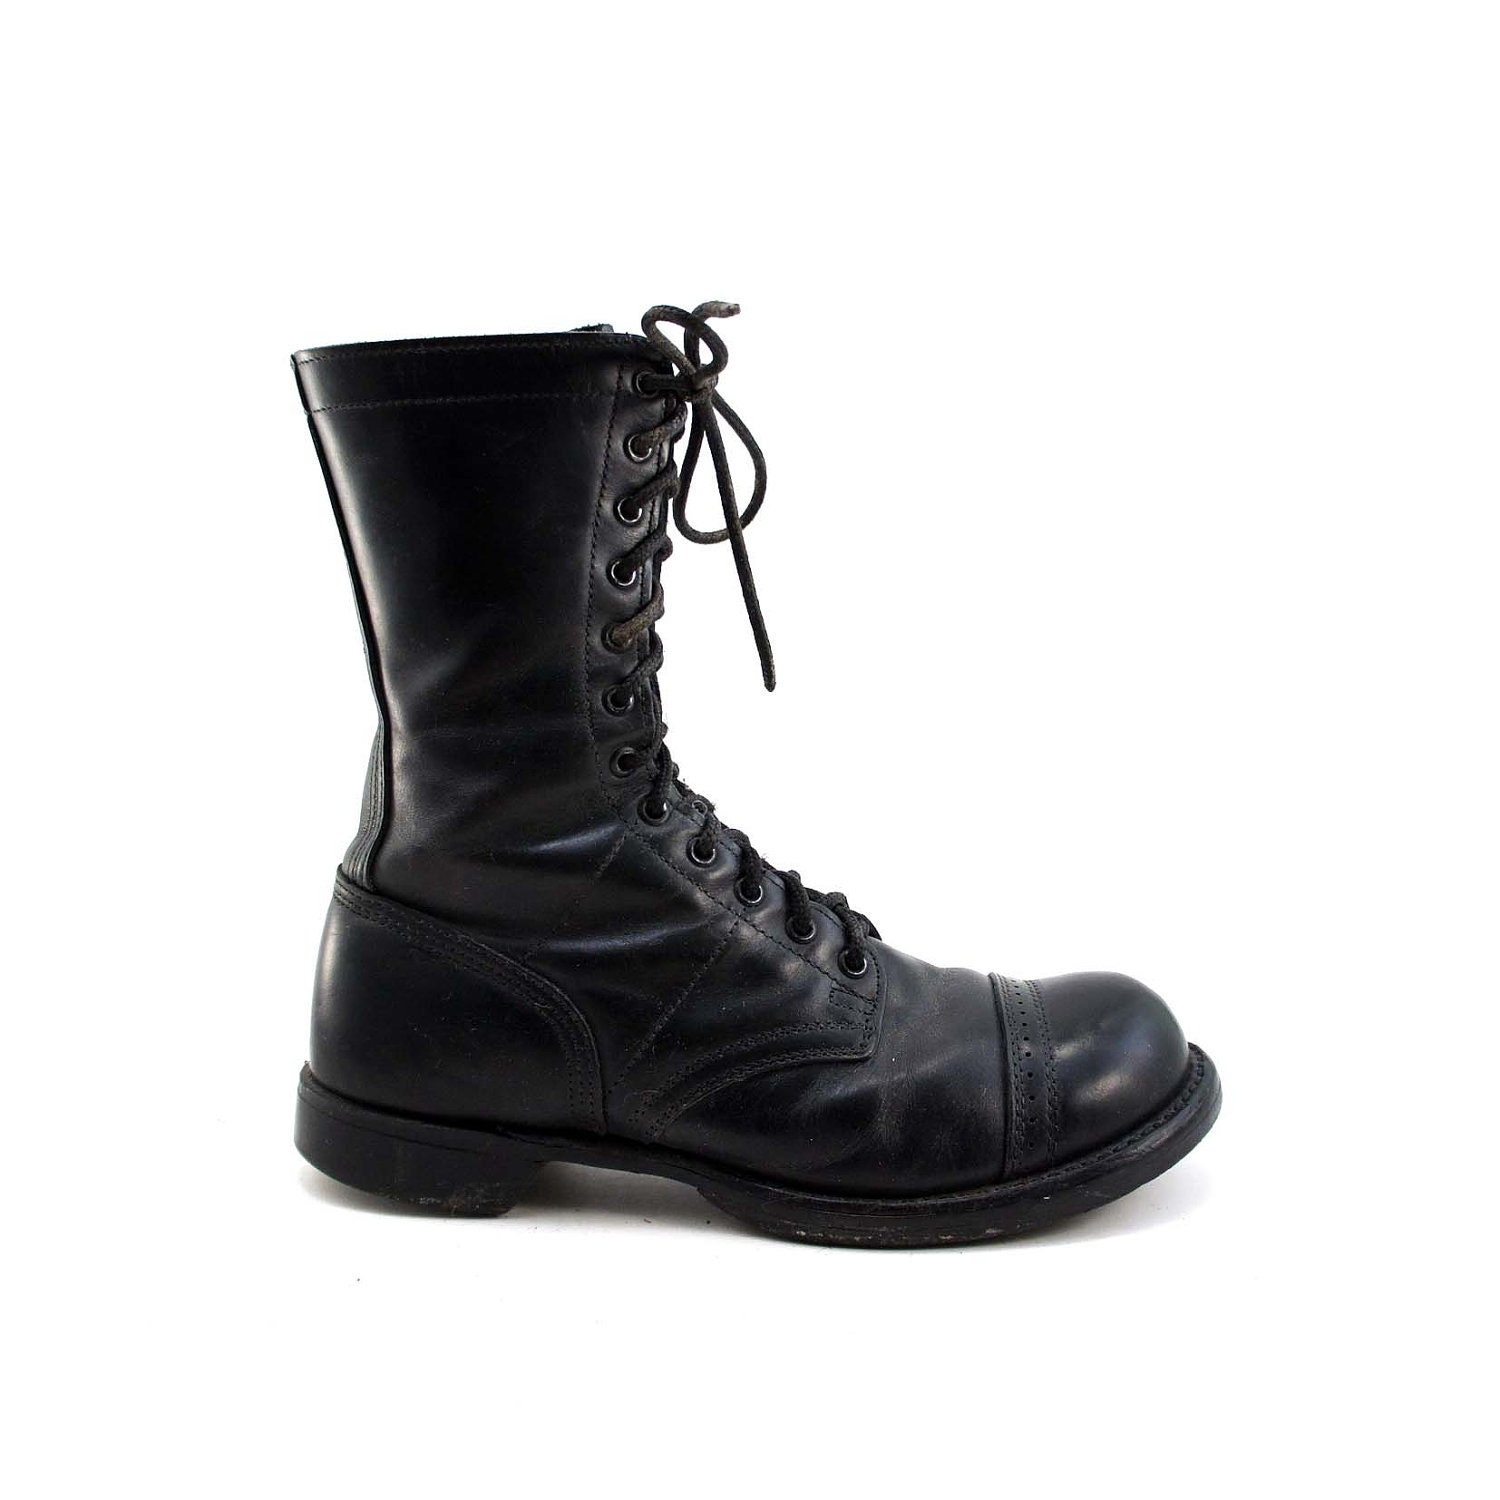 Military Corcoran Jump Boots In Combat Boot Style For A